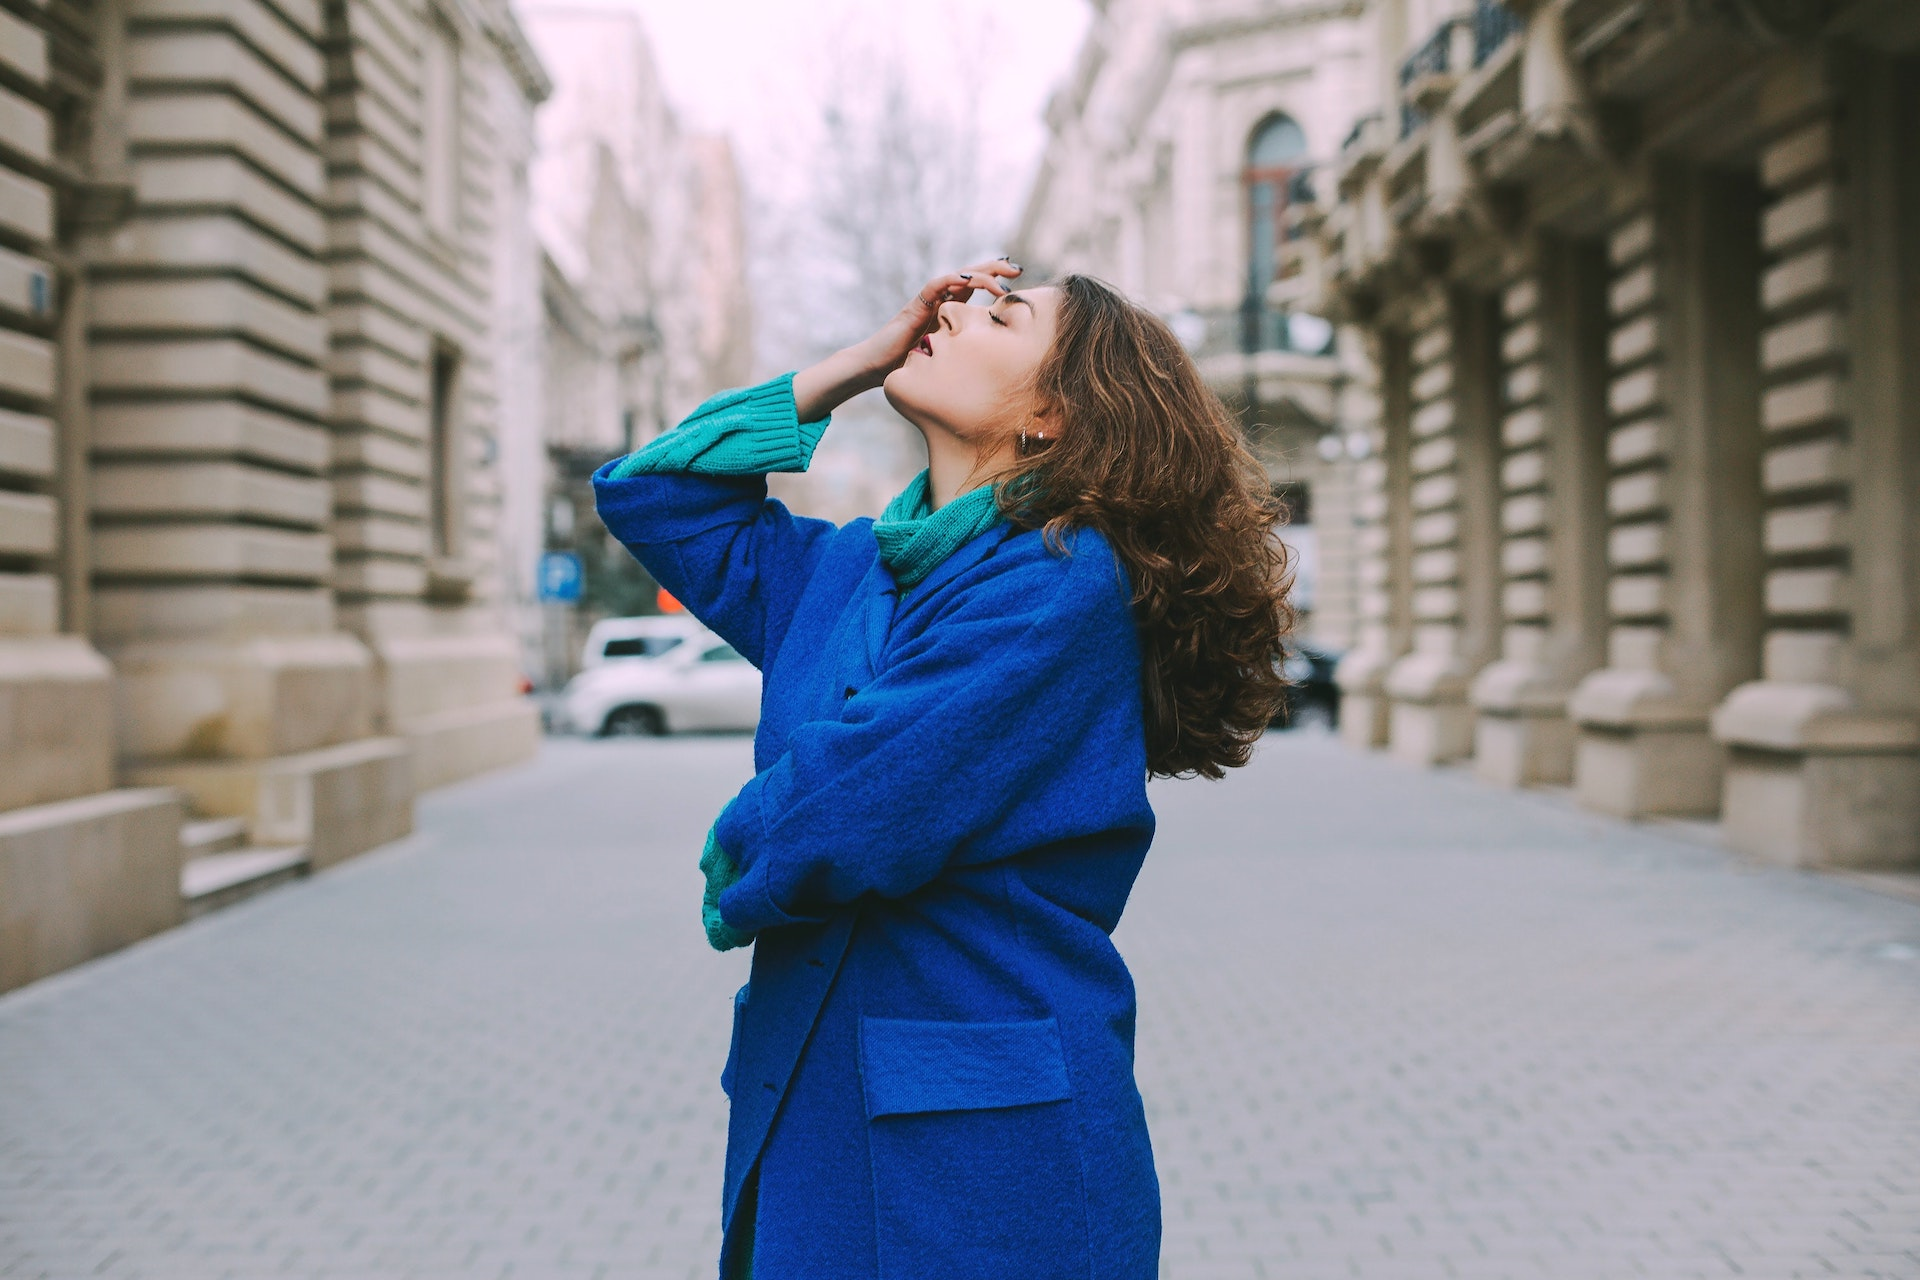 3 Wellness Techniques To Release The Daily Stress of Running a Business